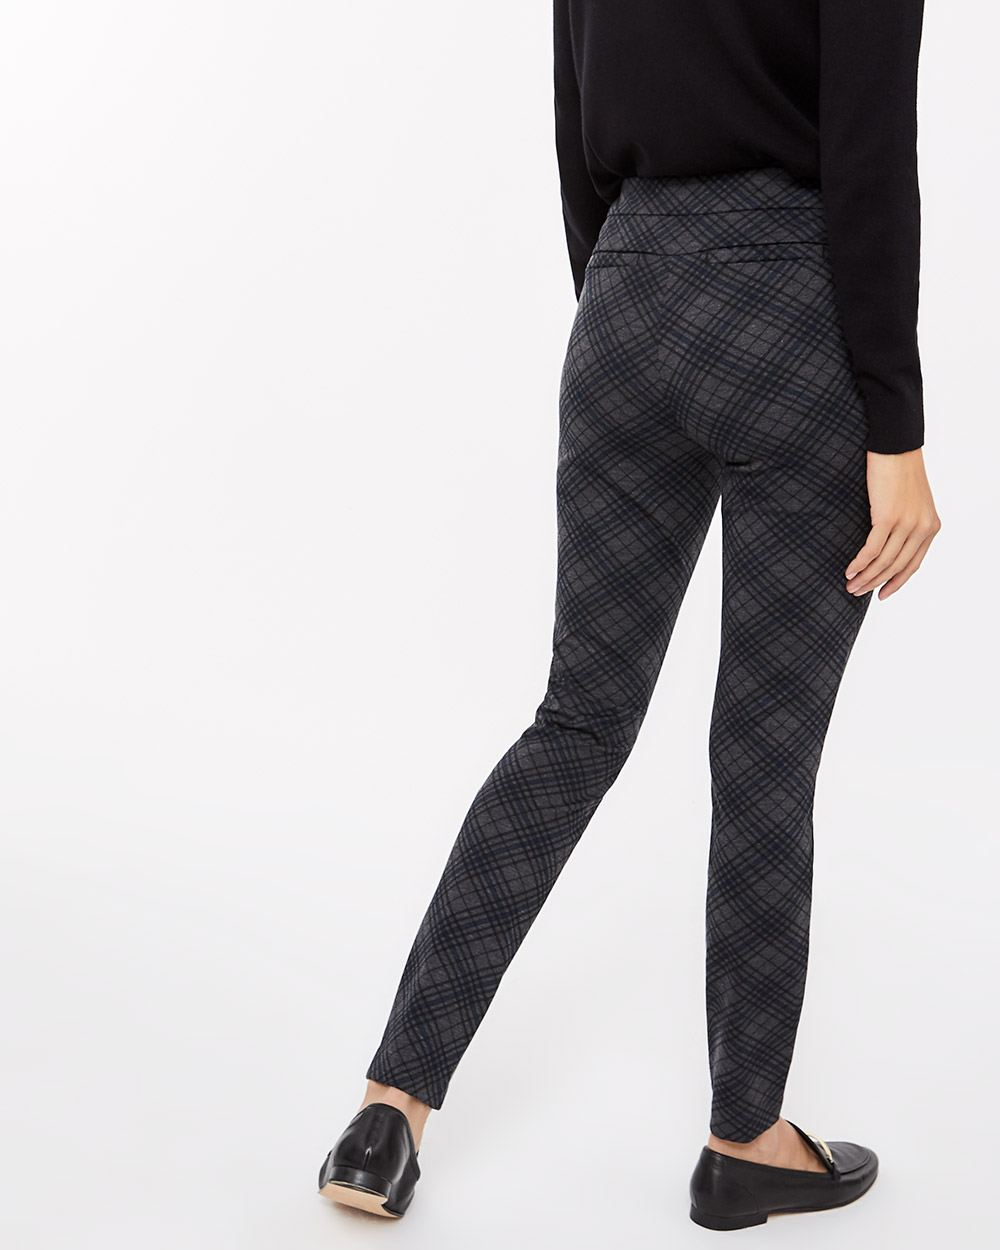 The Modern Stretch Printed Leggings